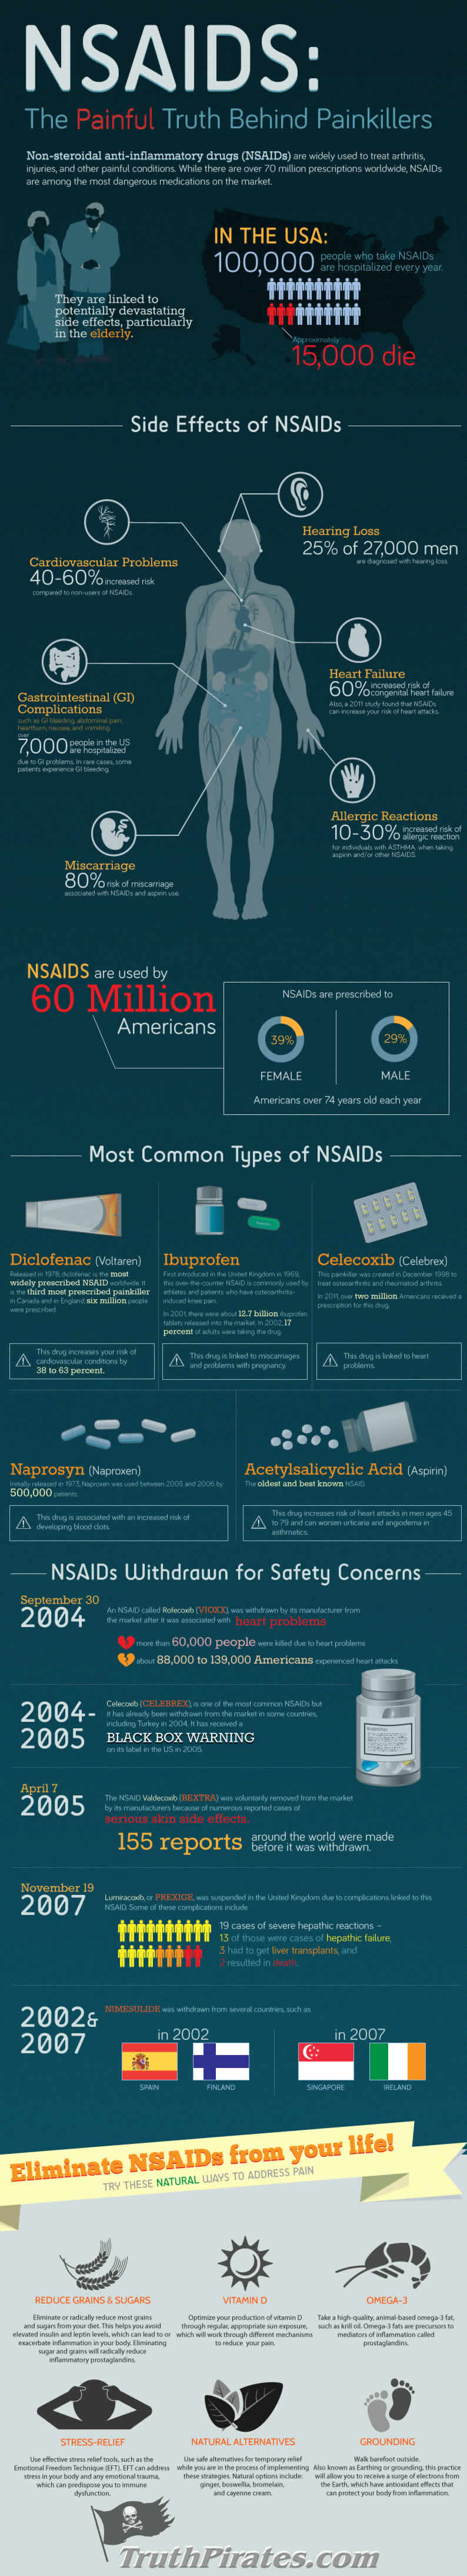 NSAIDS - The truth behind painkillers